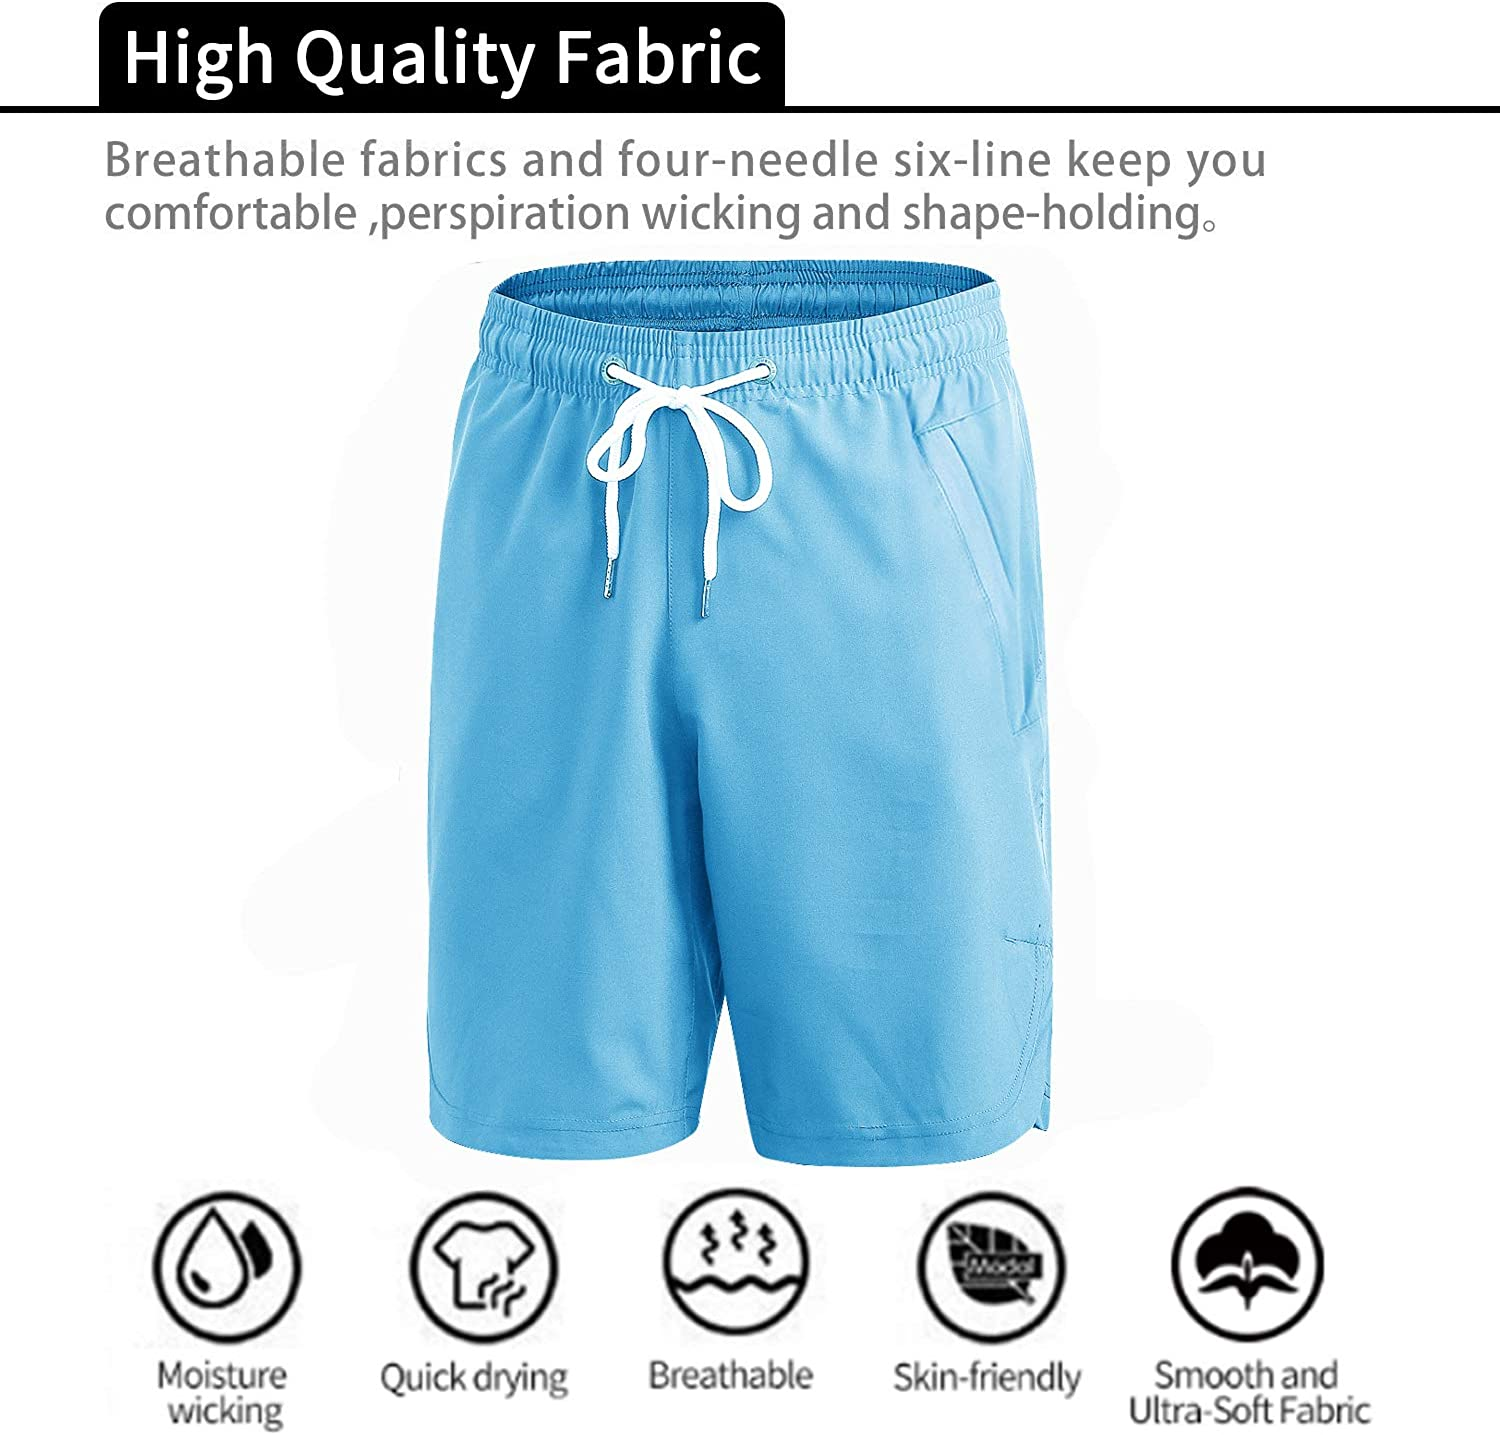 Yuerlian Men's Sports Shorts, Quick Dry Workout Shorts for Men, Classic Fit Summer Short with Pockets Sky Blue